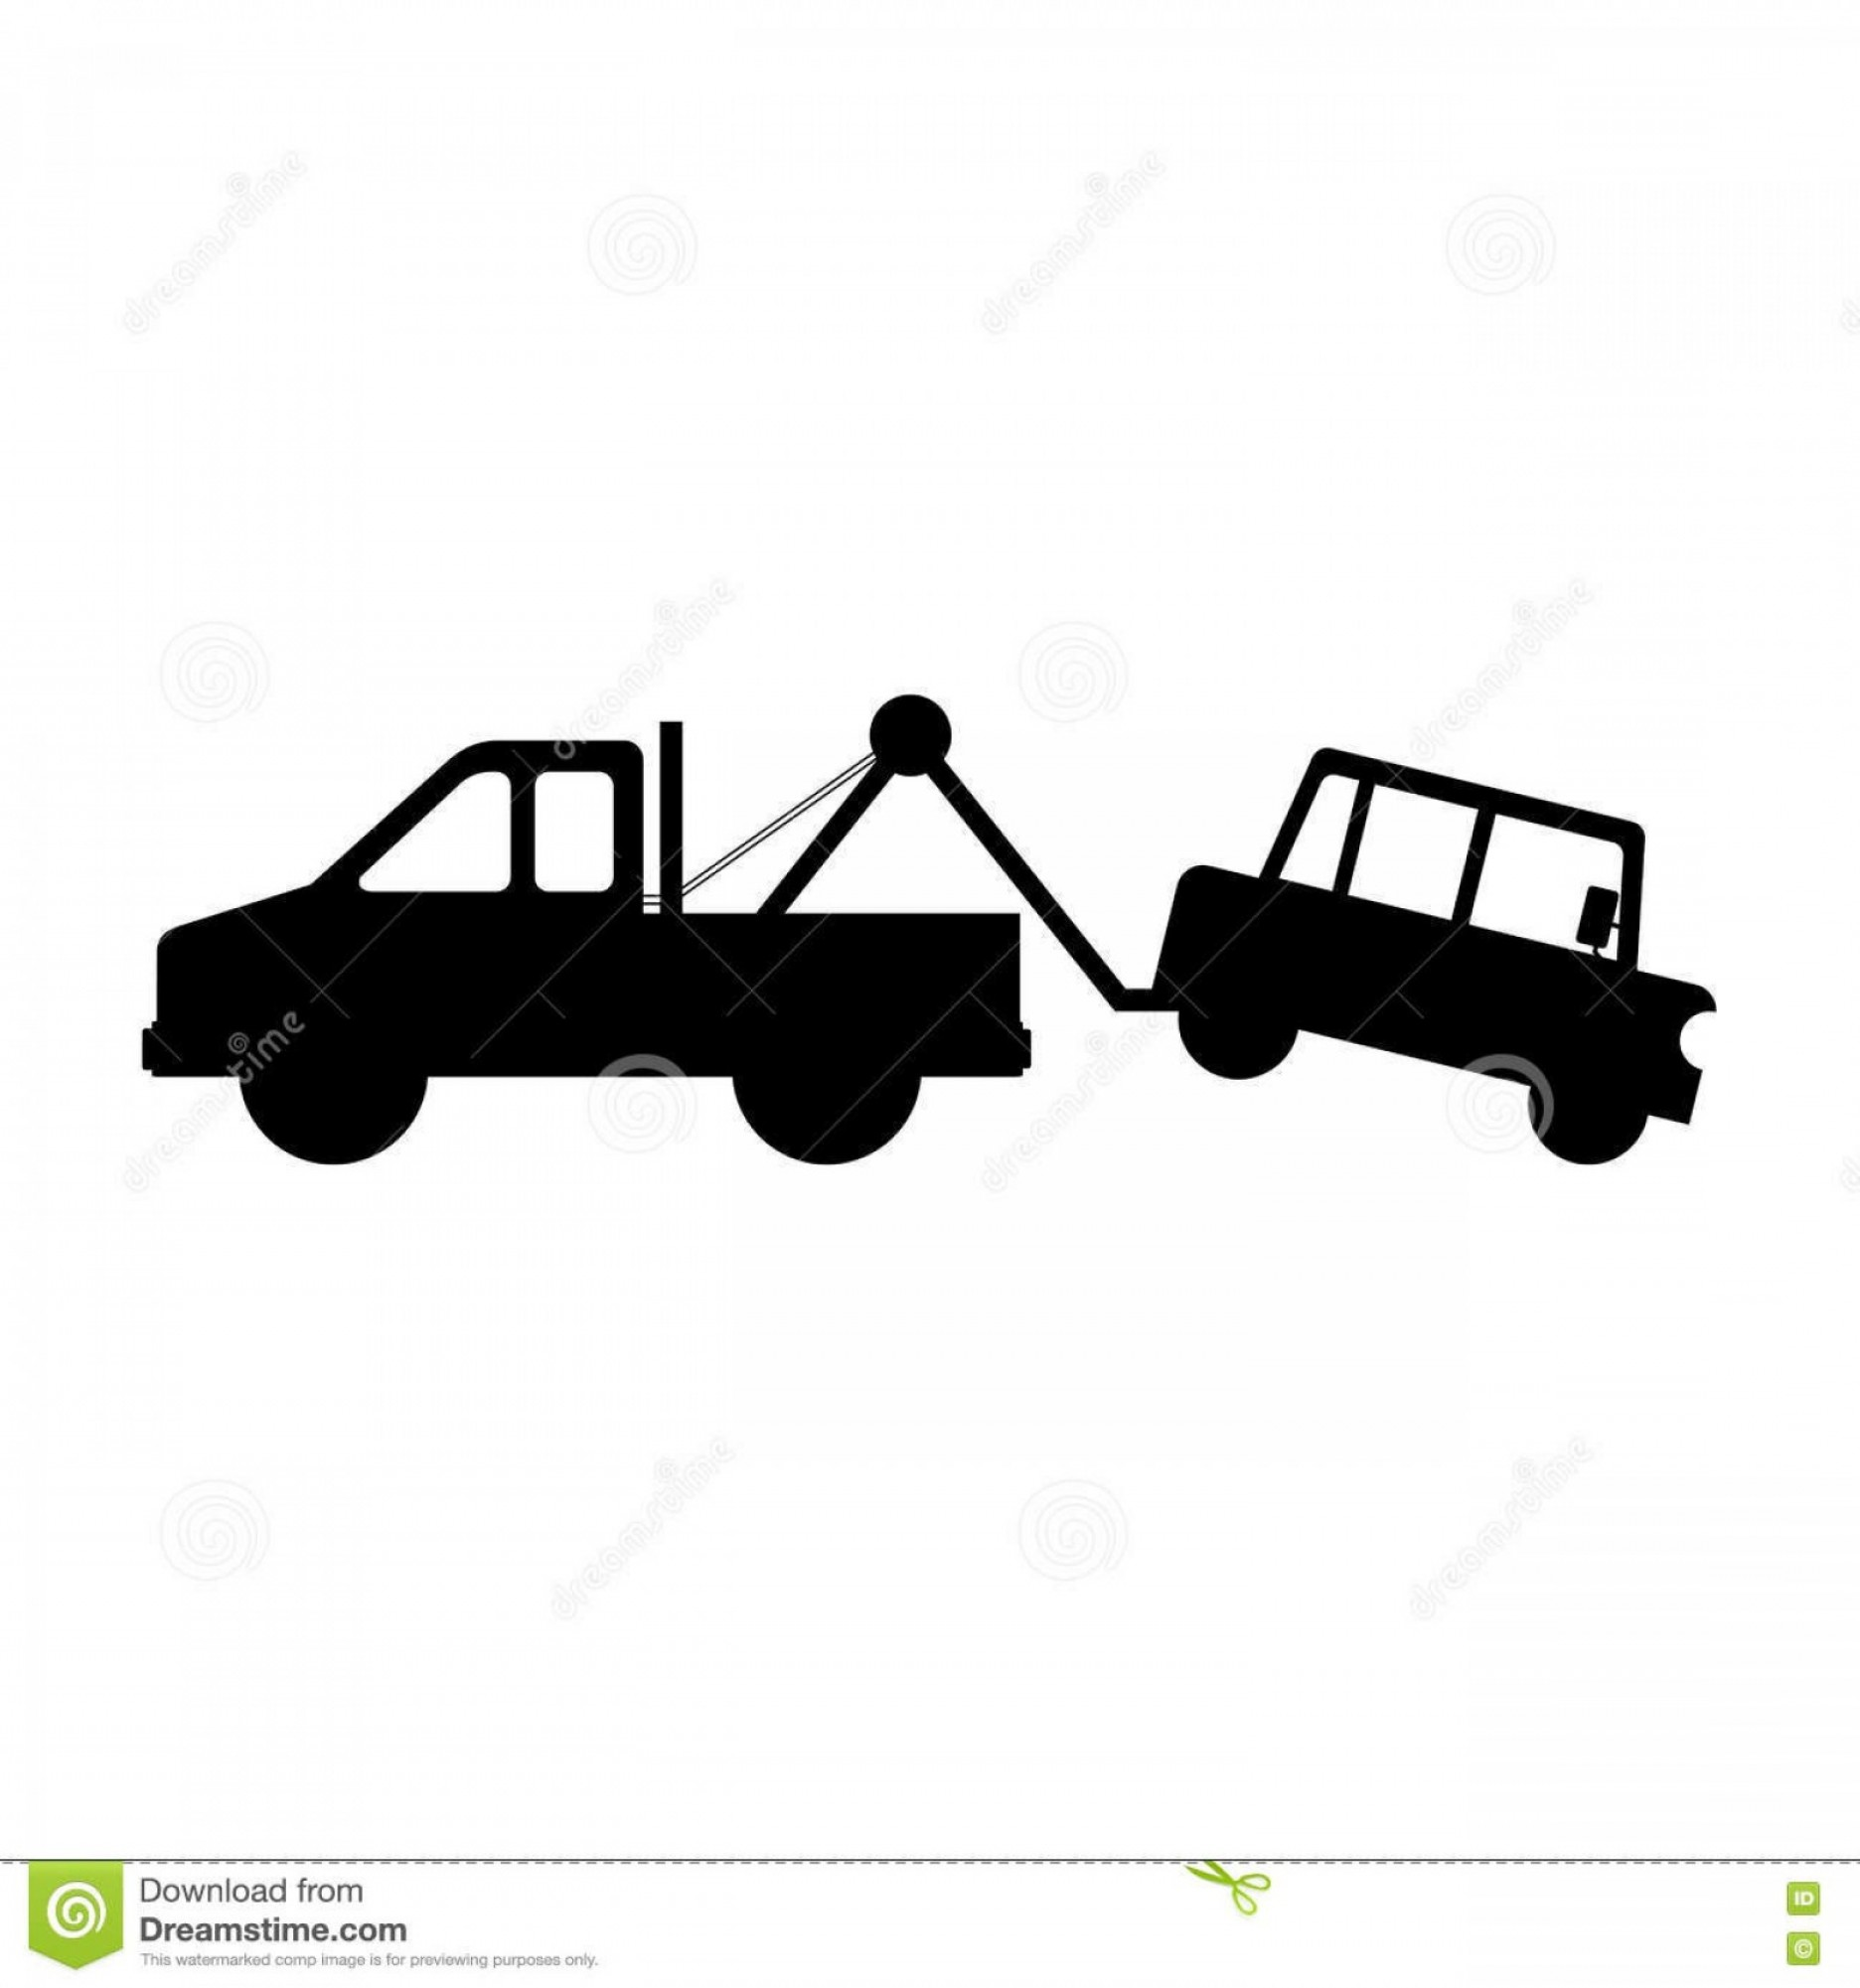 Towing Truck Hook Vector: Stock Illustration Tow Truck Icon Silhouette Car Over White Background Vector Illustration Image